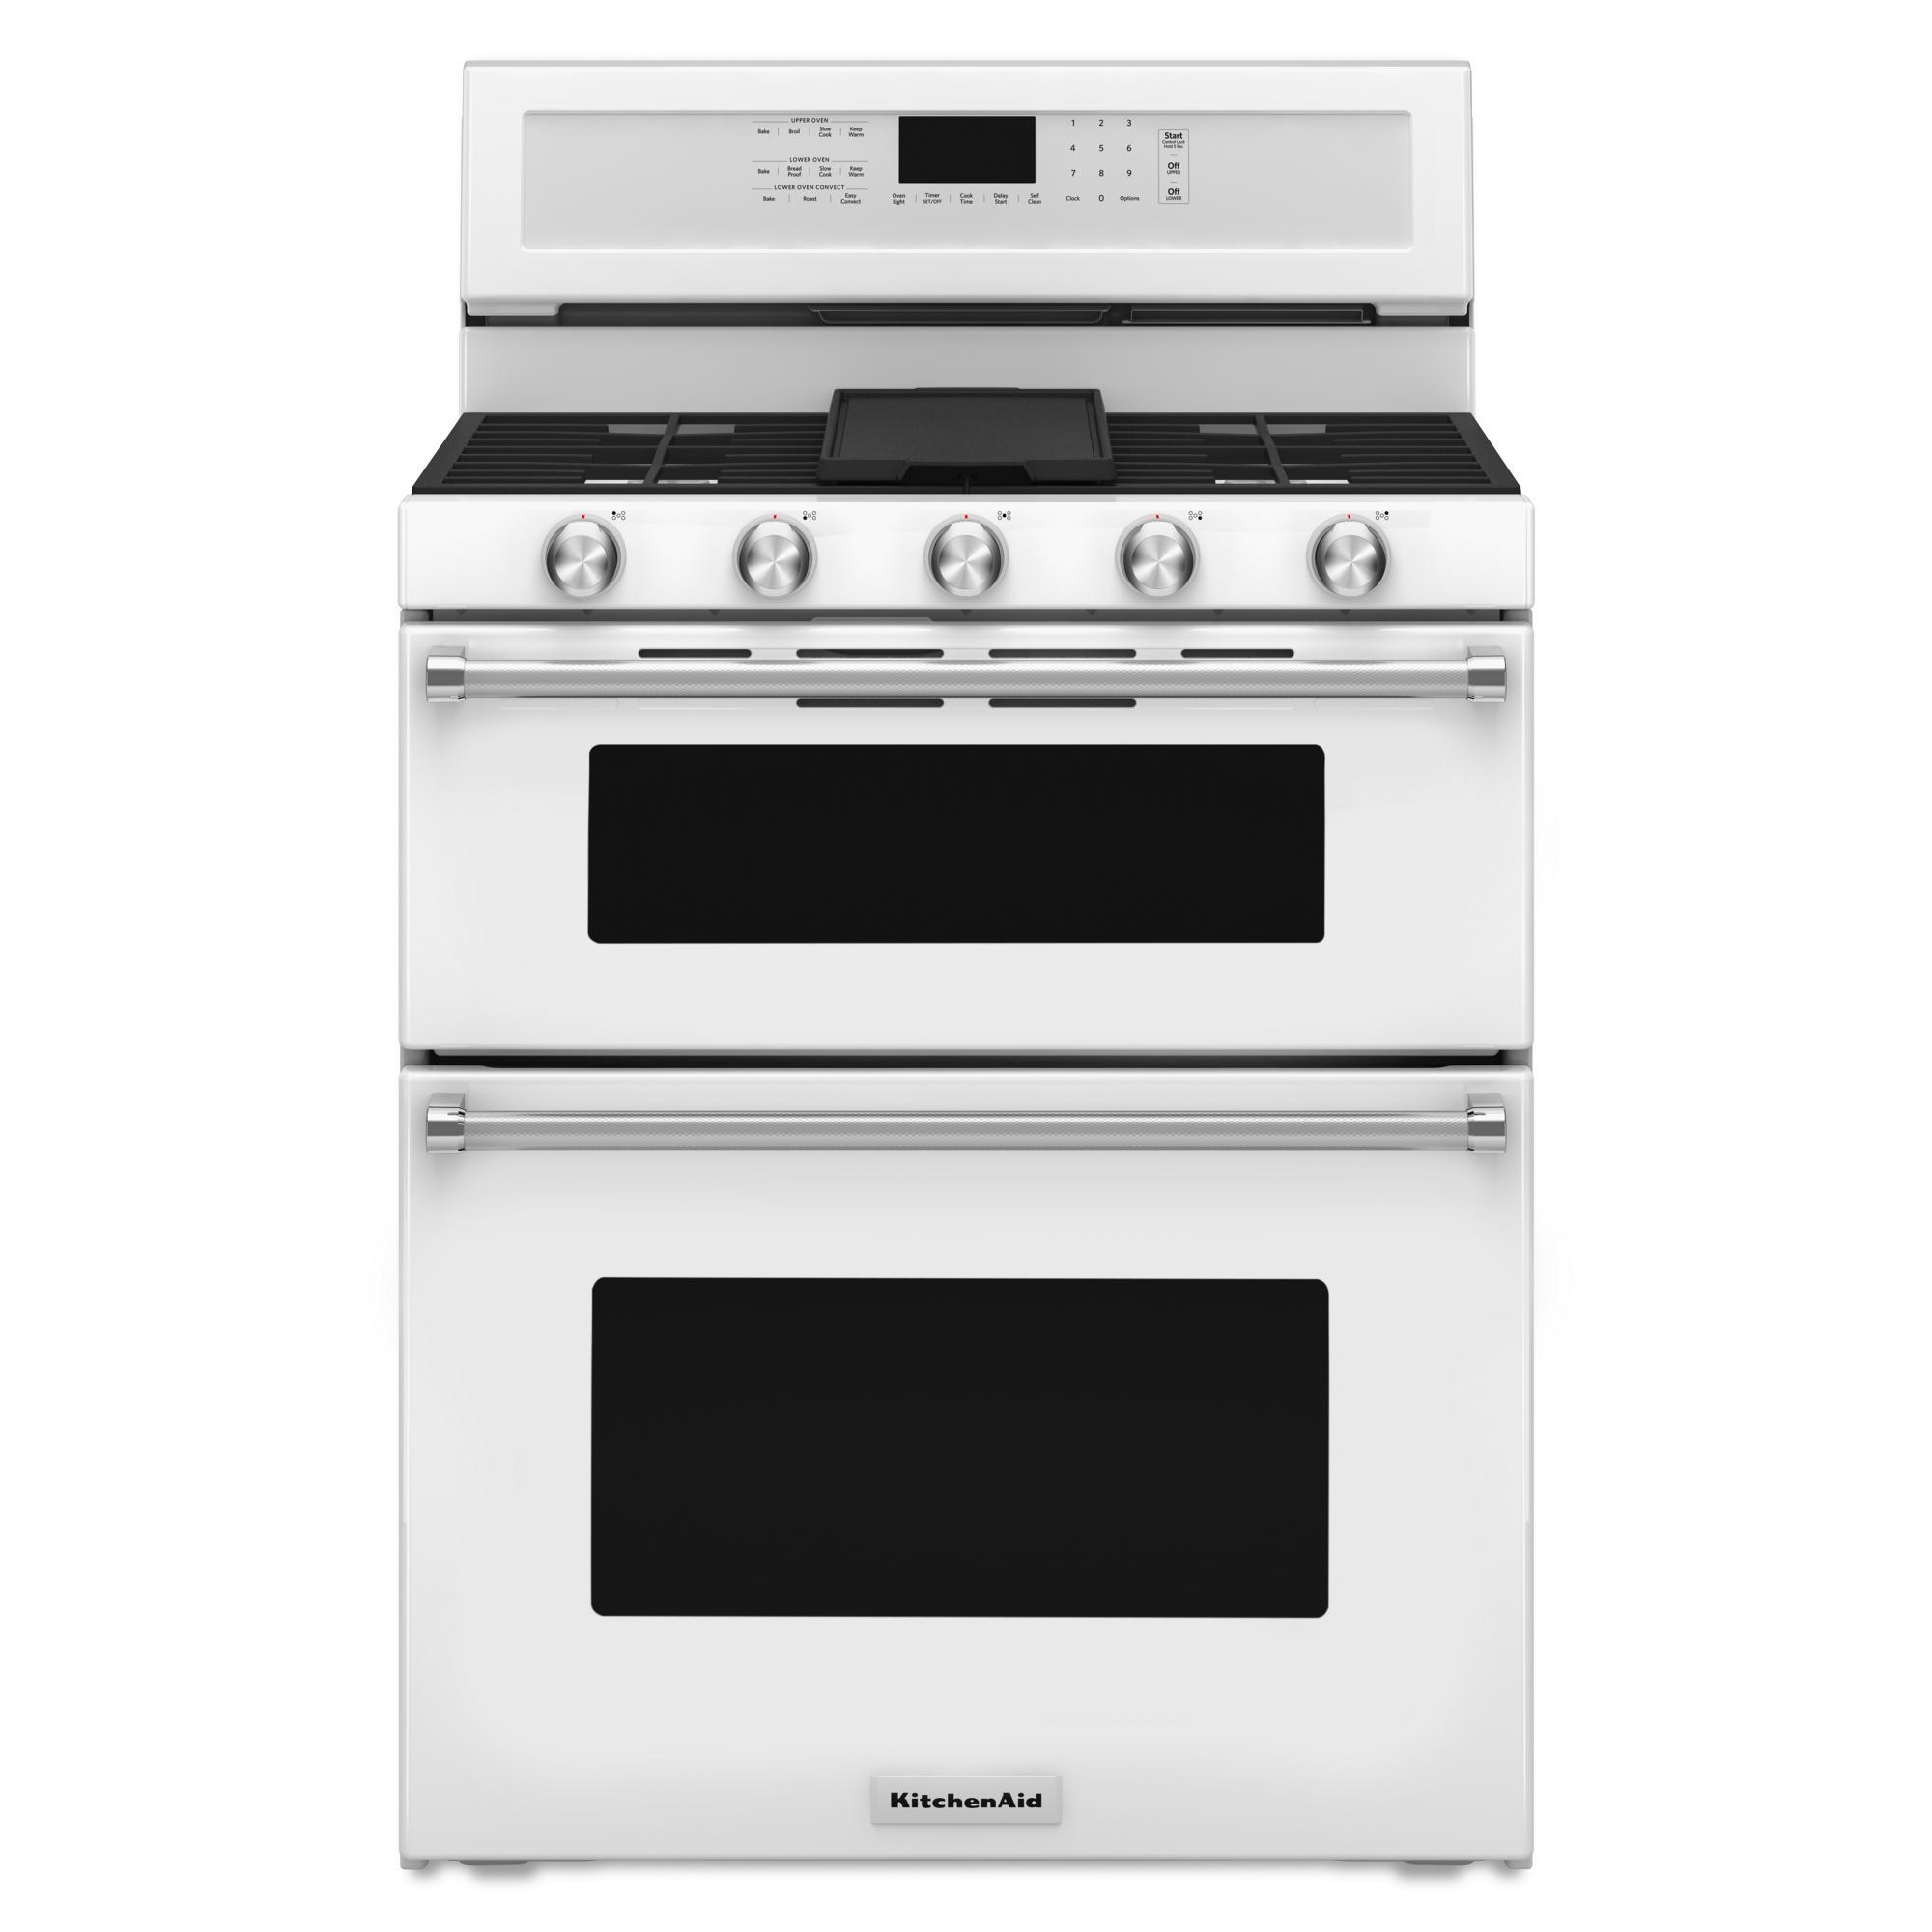 Kfgd500e Kitchenaid Kfgd500e Gas Ranges